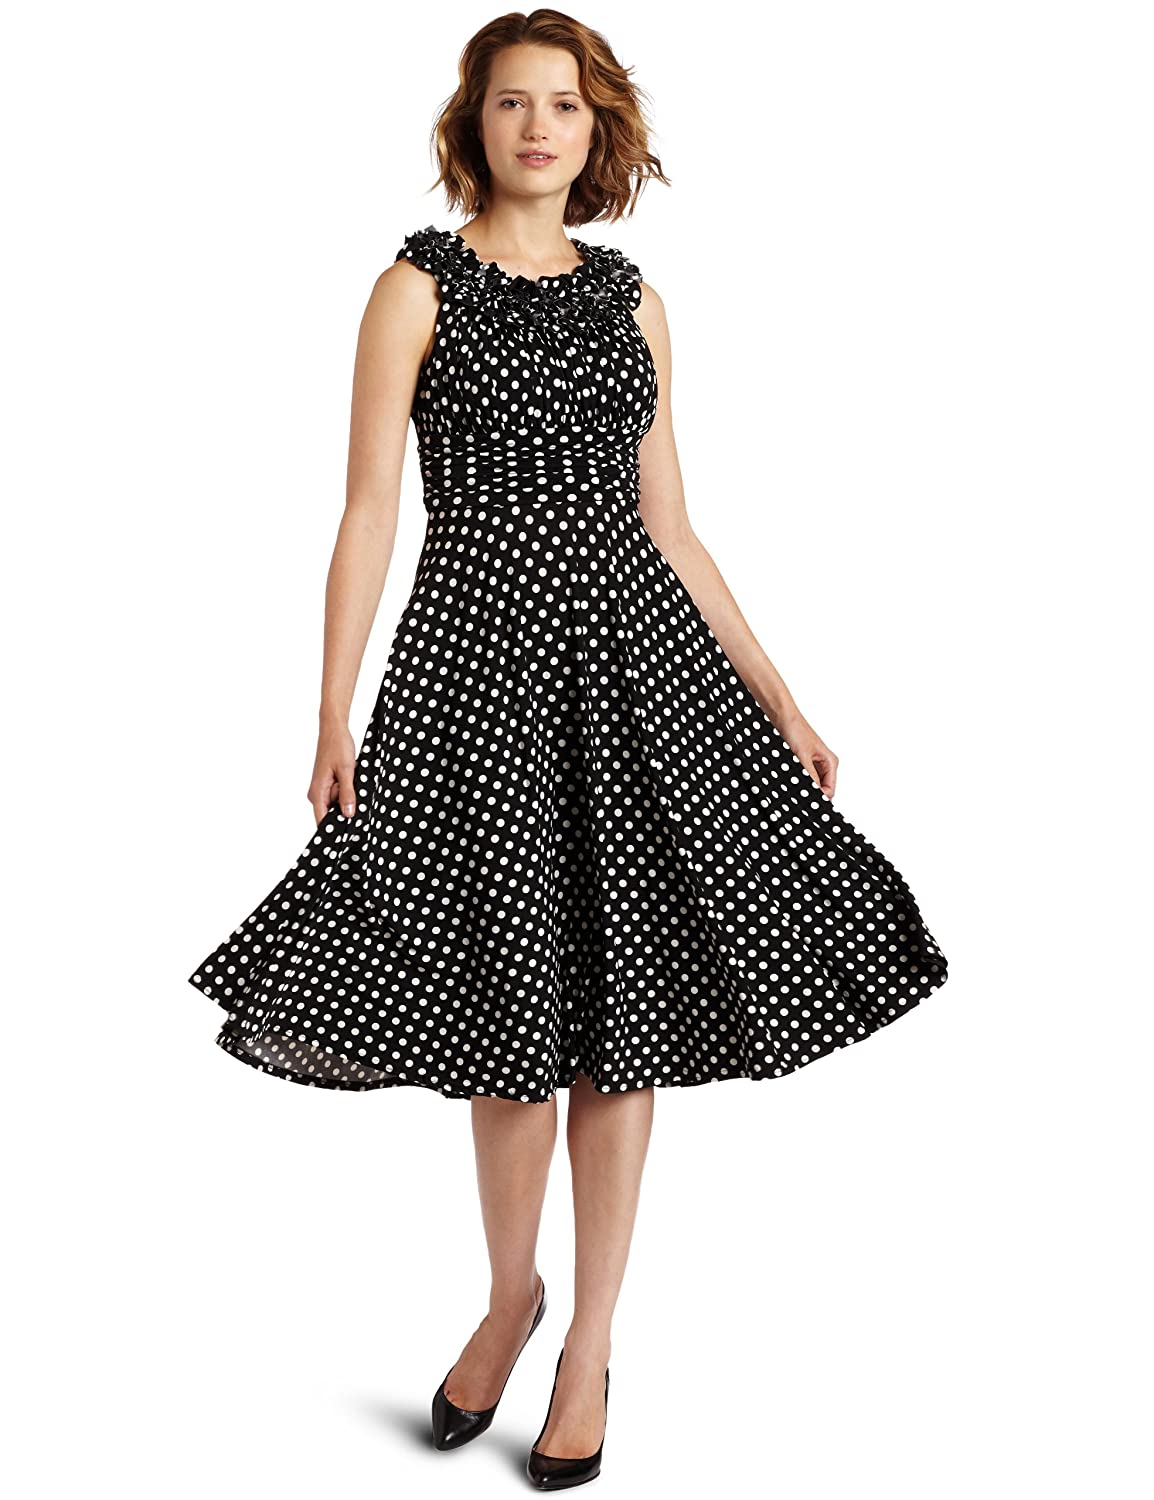 Polka dot patterns are the most popular theme at all parties. This includes kids birthday parties and bridal showers. At Polka Dot Design, polka dot invitations are available online. You don't even need polka dot coupon codes or discount codes.